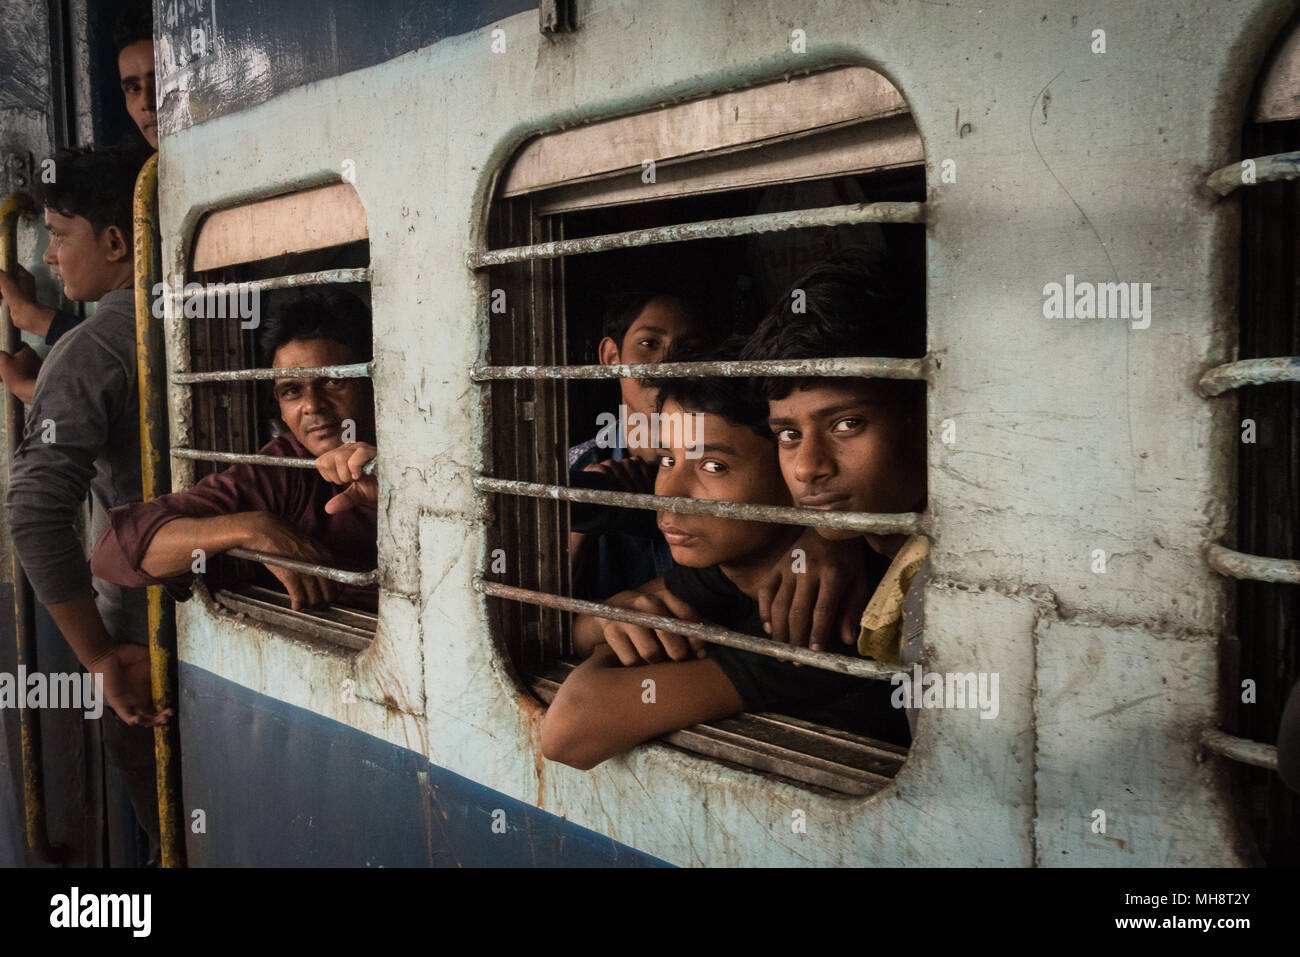 Men sitting in a second class rail car just as it is pulling out of the station in Sonepur, India. - Stock Image